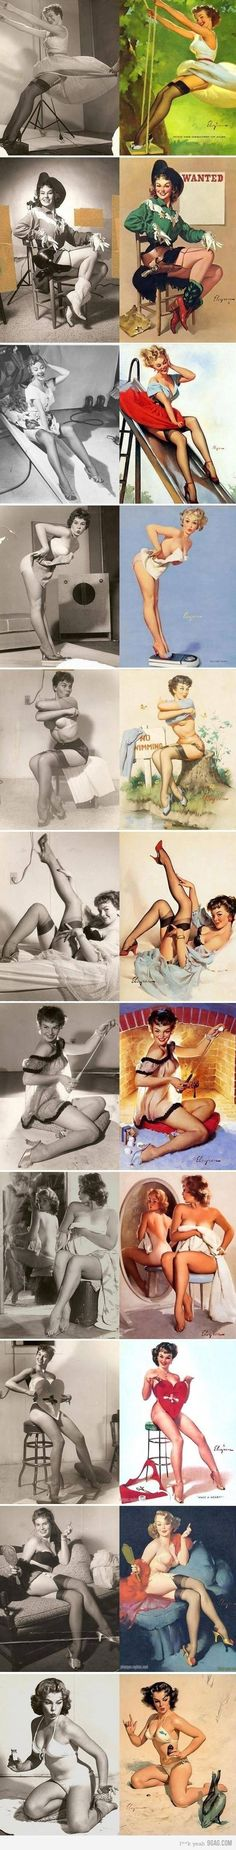 Photos to Illustrations for Pinups